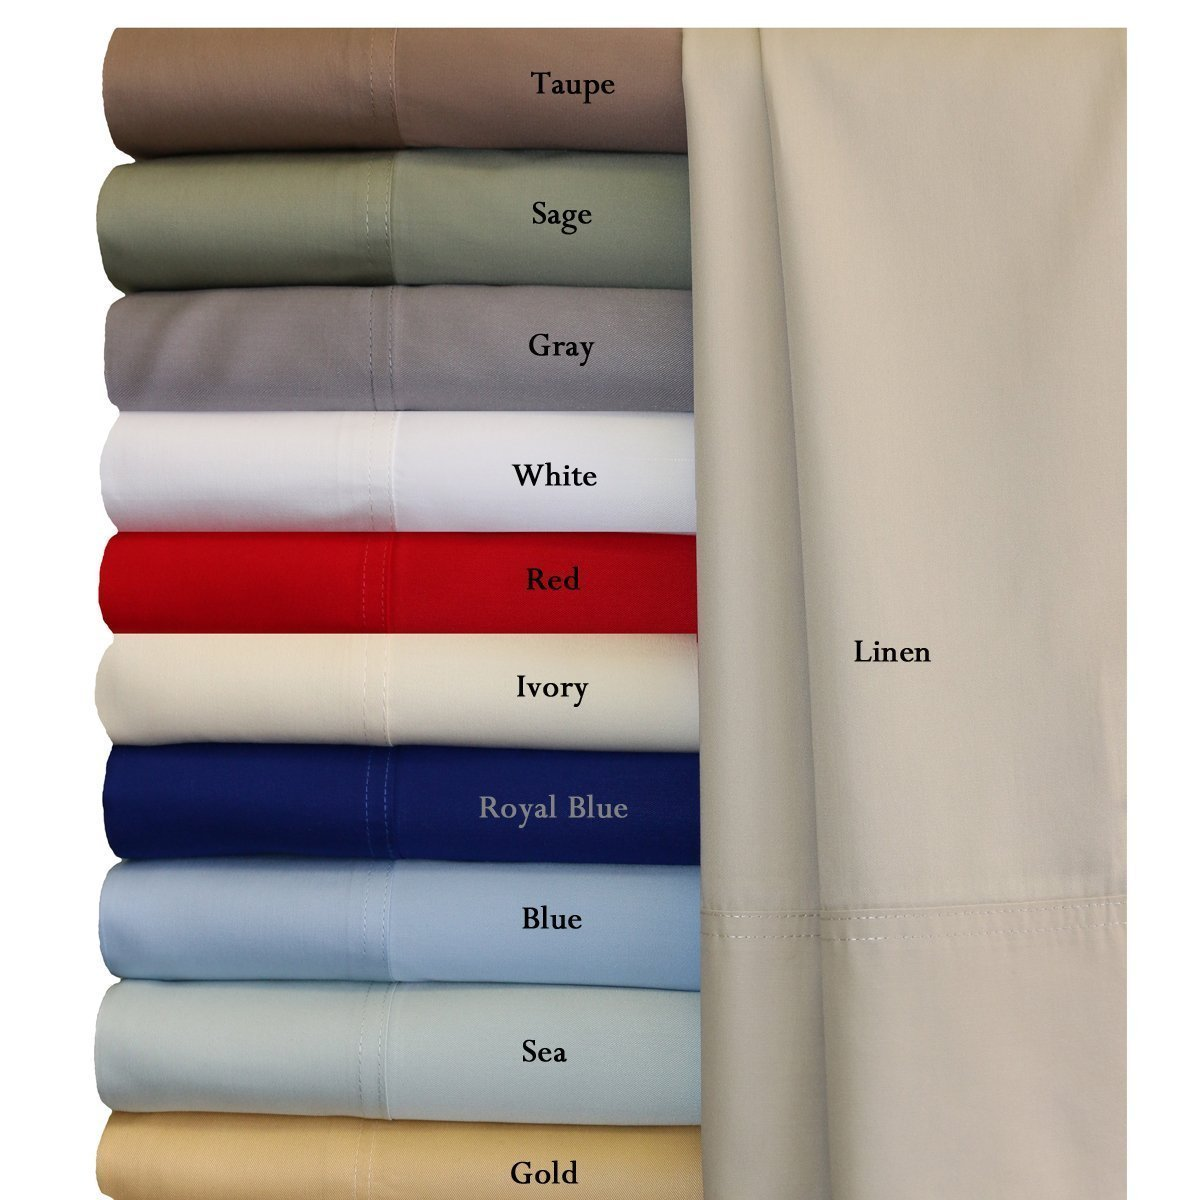 100% Bamboo Bed Sheet Set - Split California King, Solid Taupe - Super Soft & Cool, Bamboo Viscose, 5PC Sheets